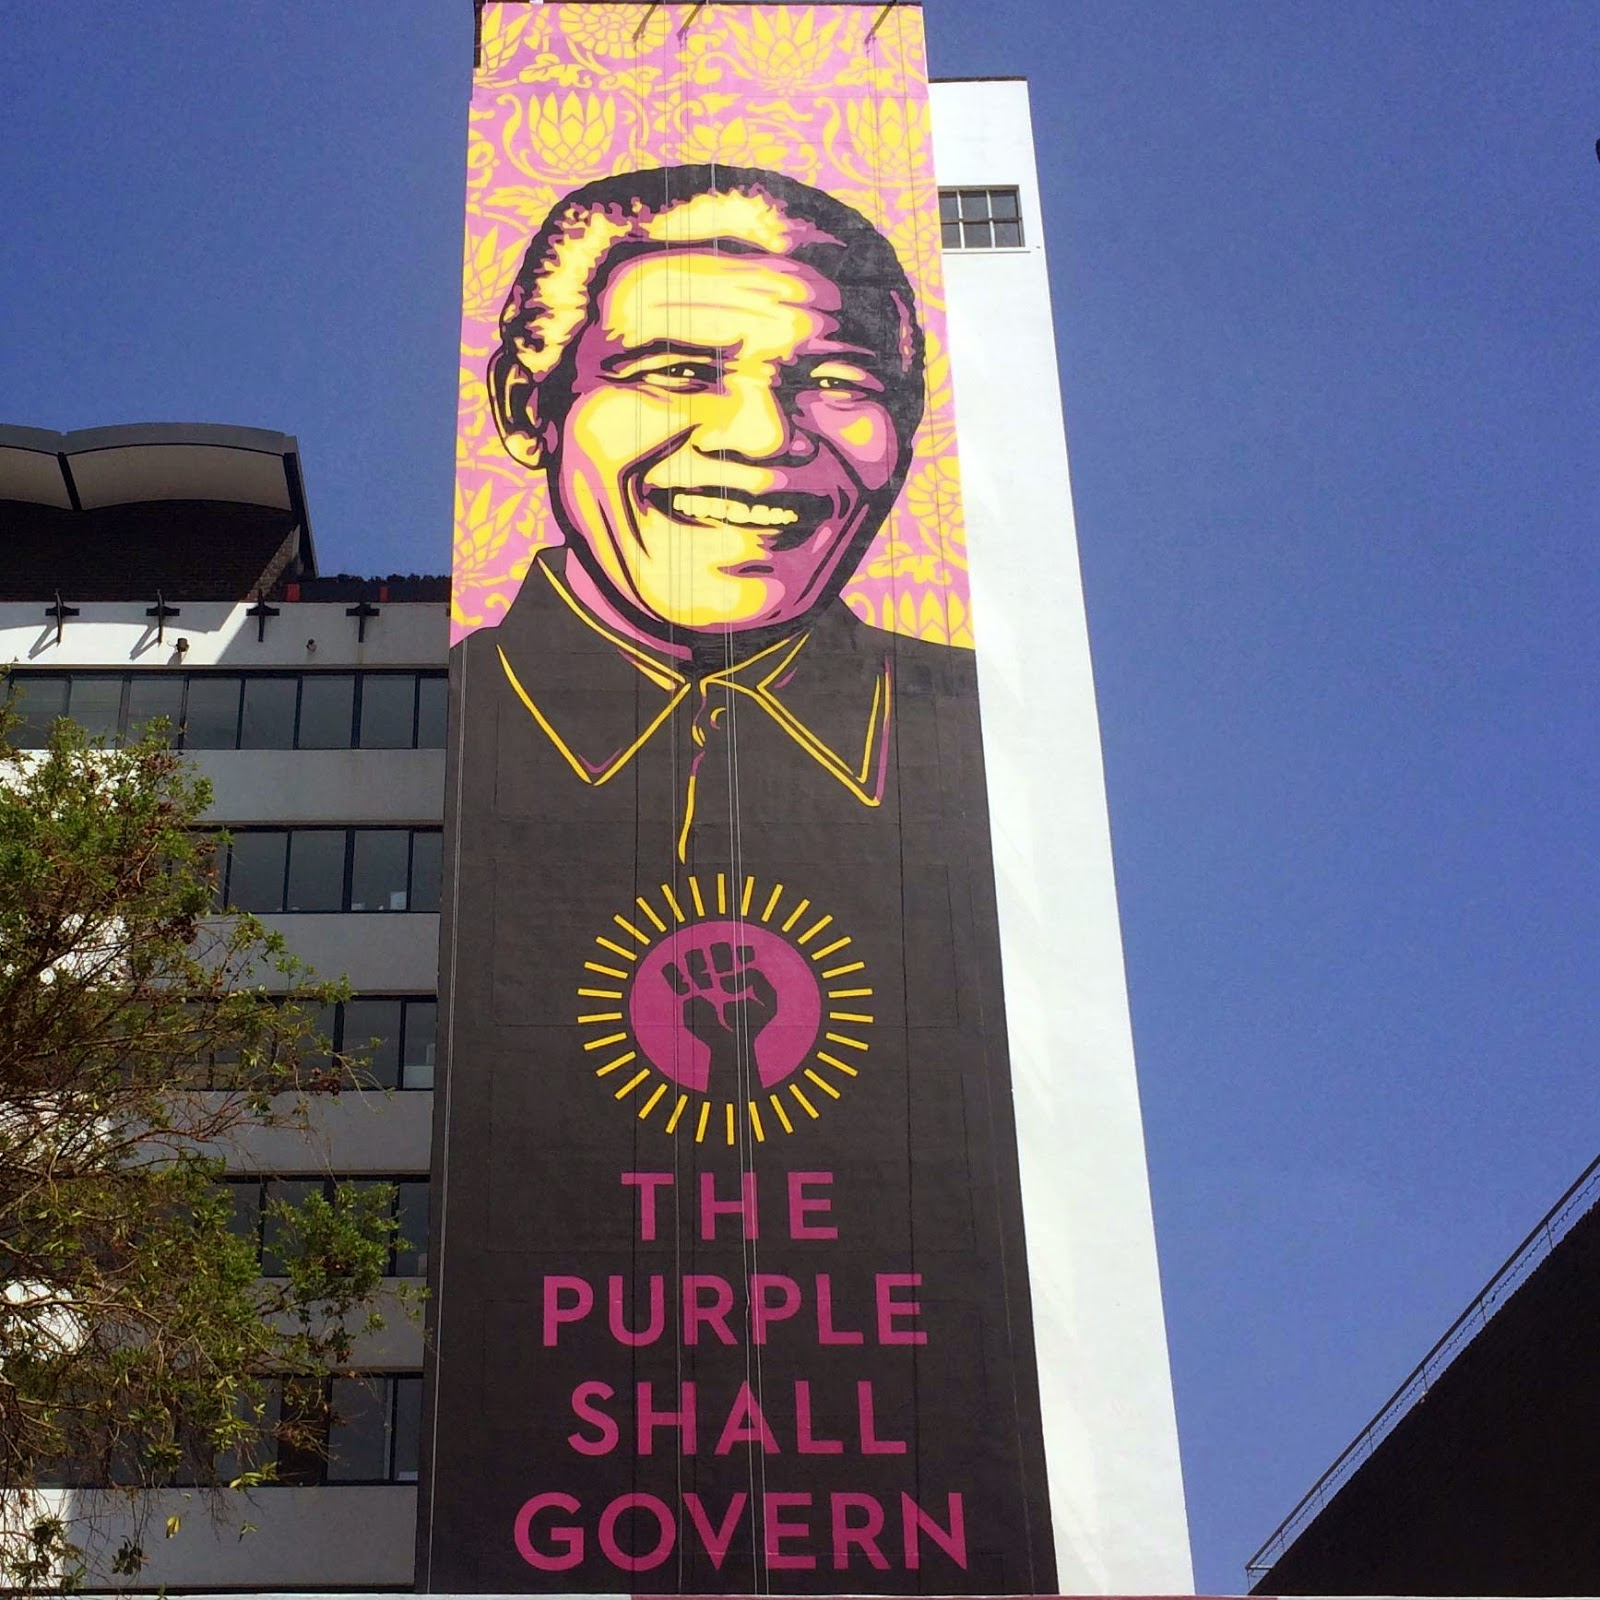 After Berlin in Germany, Shepard Fairey flew straight to South Africa to work on a massive mural somewhere on the streets of Johannesburg.